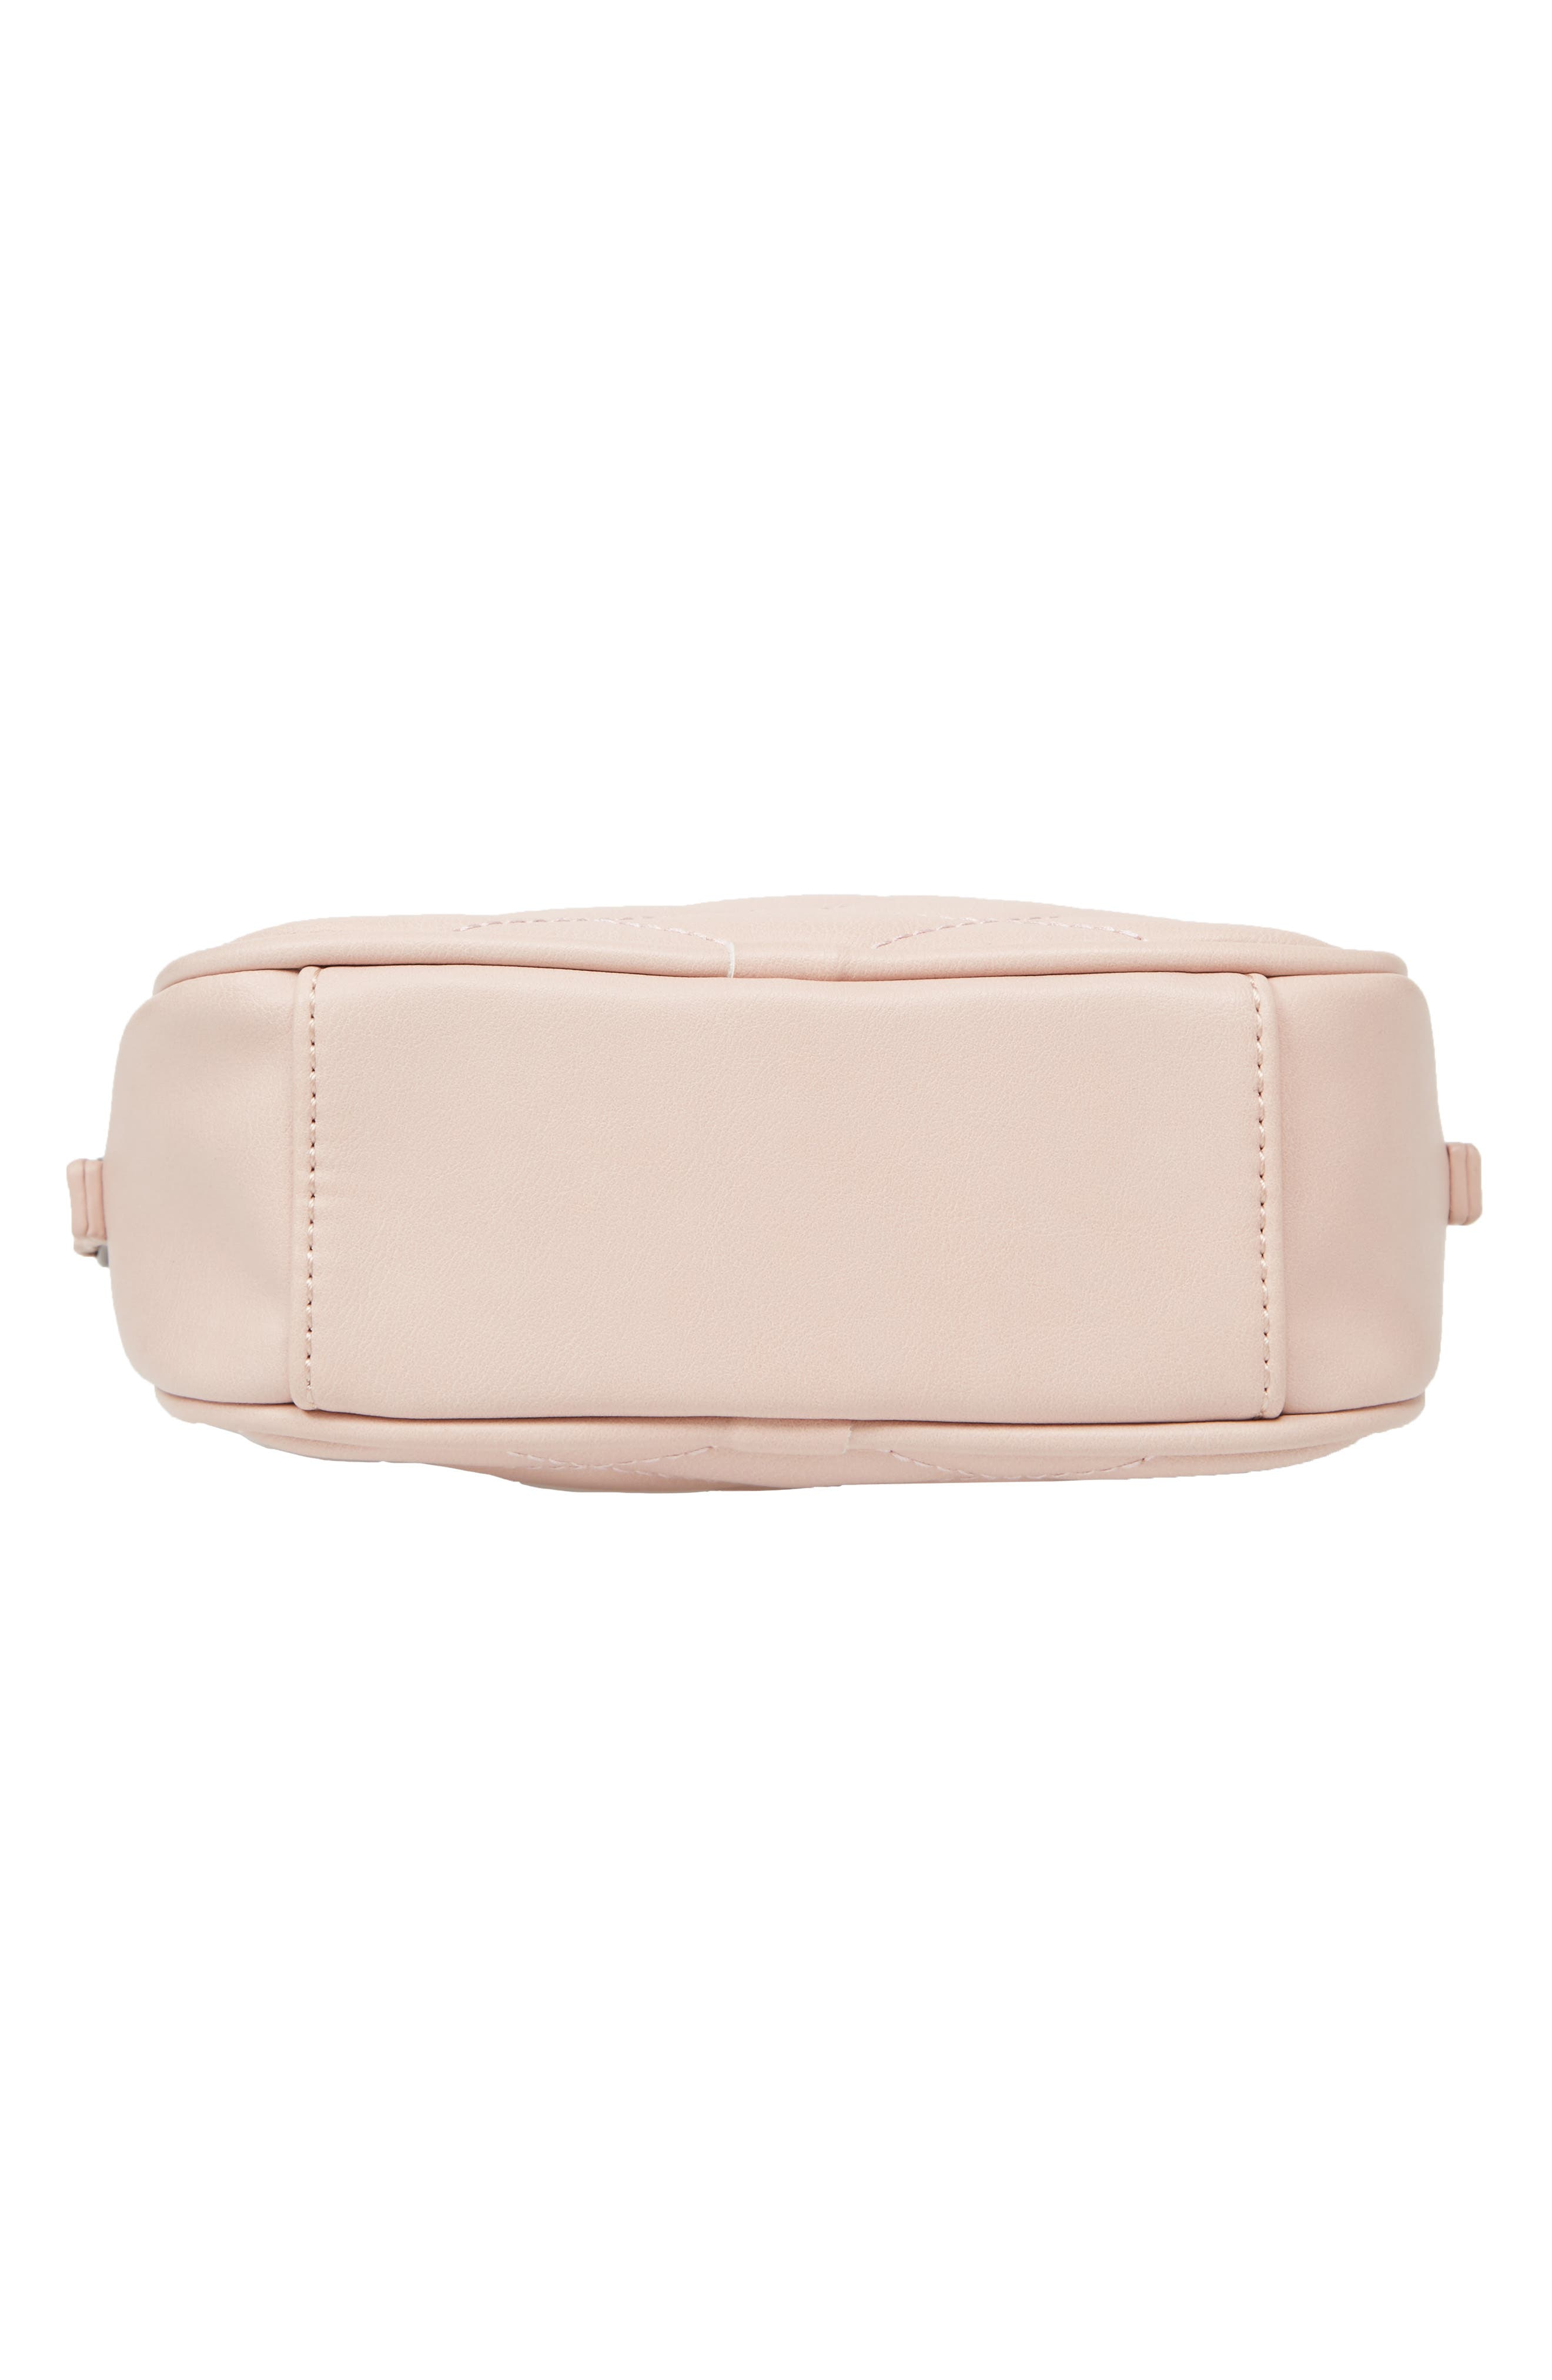 MALI + LILI, Taylor Quilted Vegan Leather Crossbody Camera Bag, Alternate thumbnail 7, color, 650